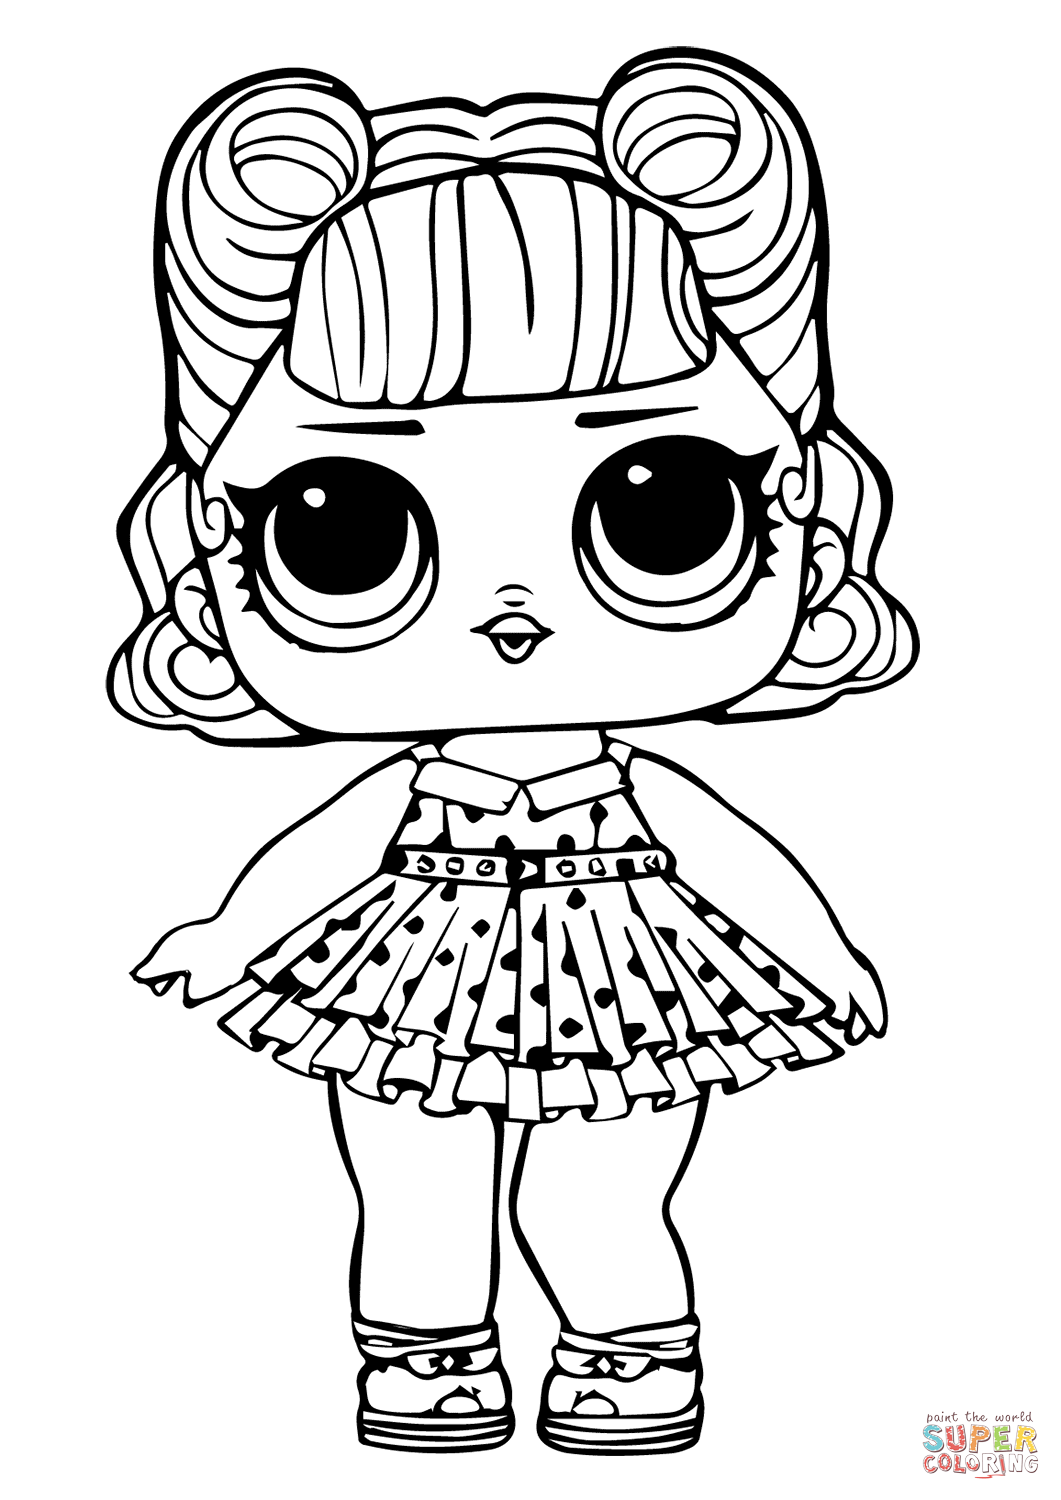 Best Lol Coloring Pages Https Dictionarydefinition Net Unicorn Coloring Pages Lol Dolls Cute Coloring Pages